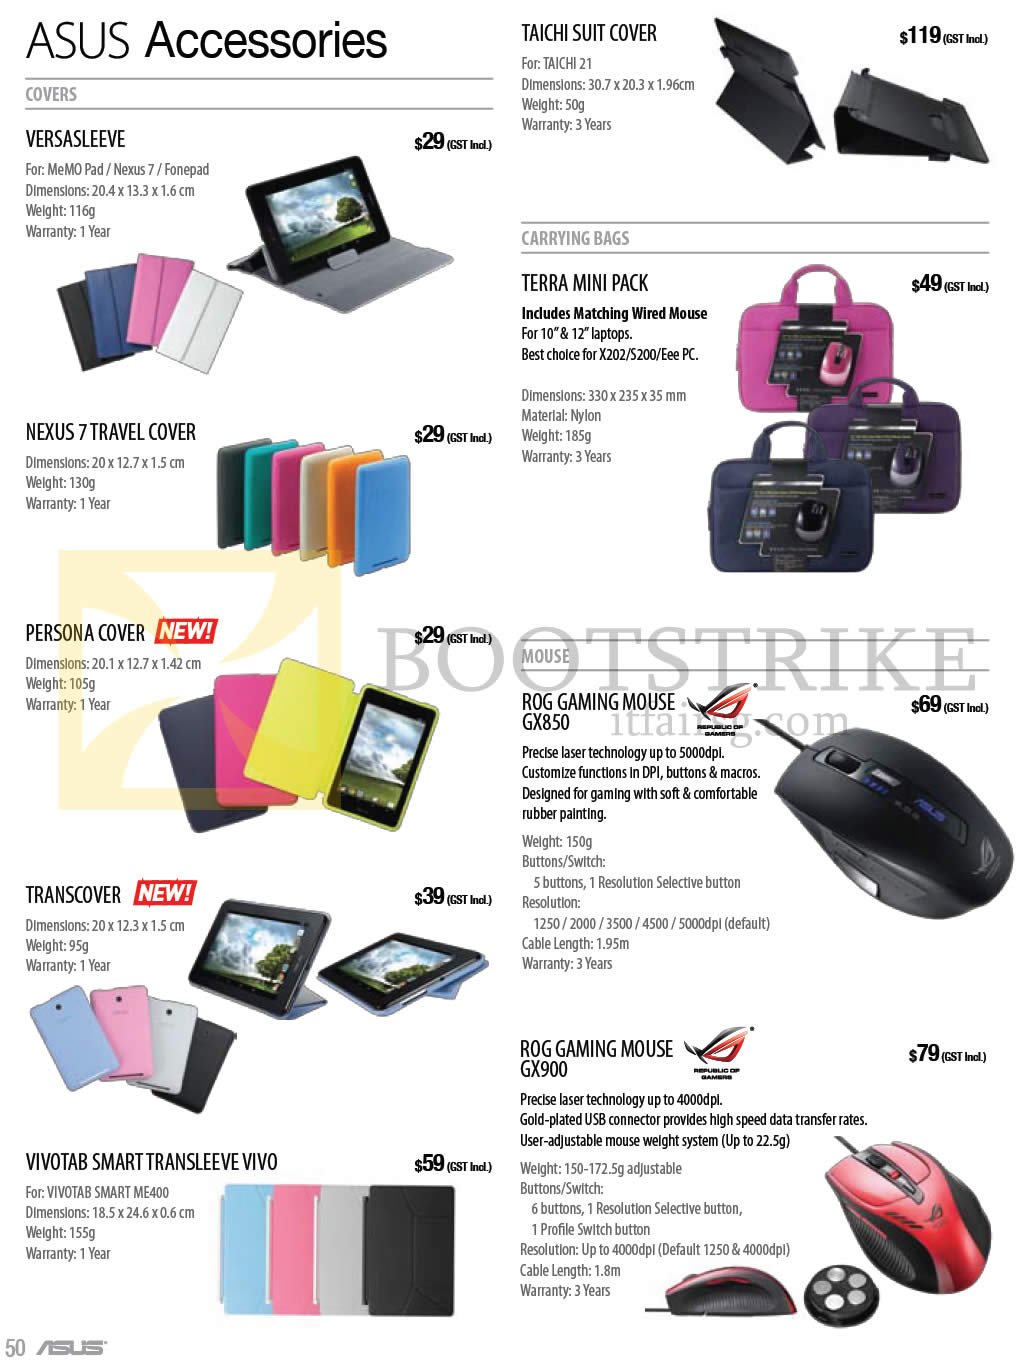 COMEX 2013 price list image brochure of ASUS Notebooks Tablets Accessories Sleeves, Covers, ROG Mouse GX850, GX900